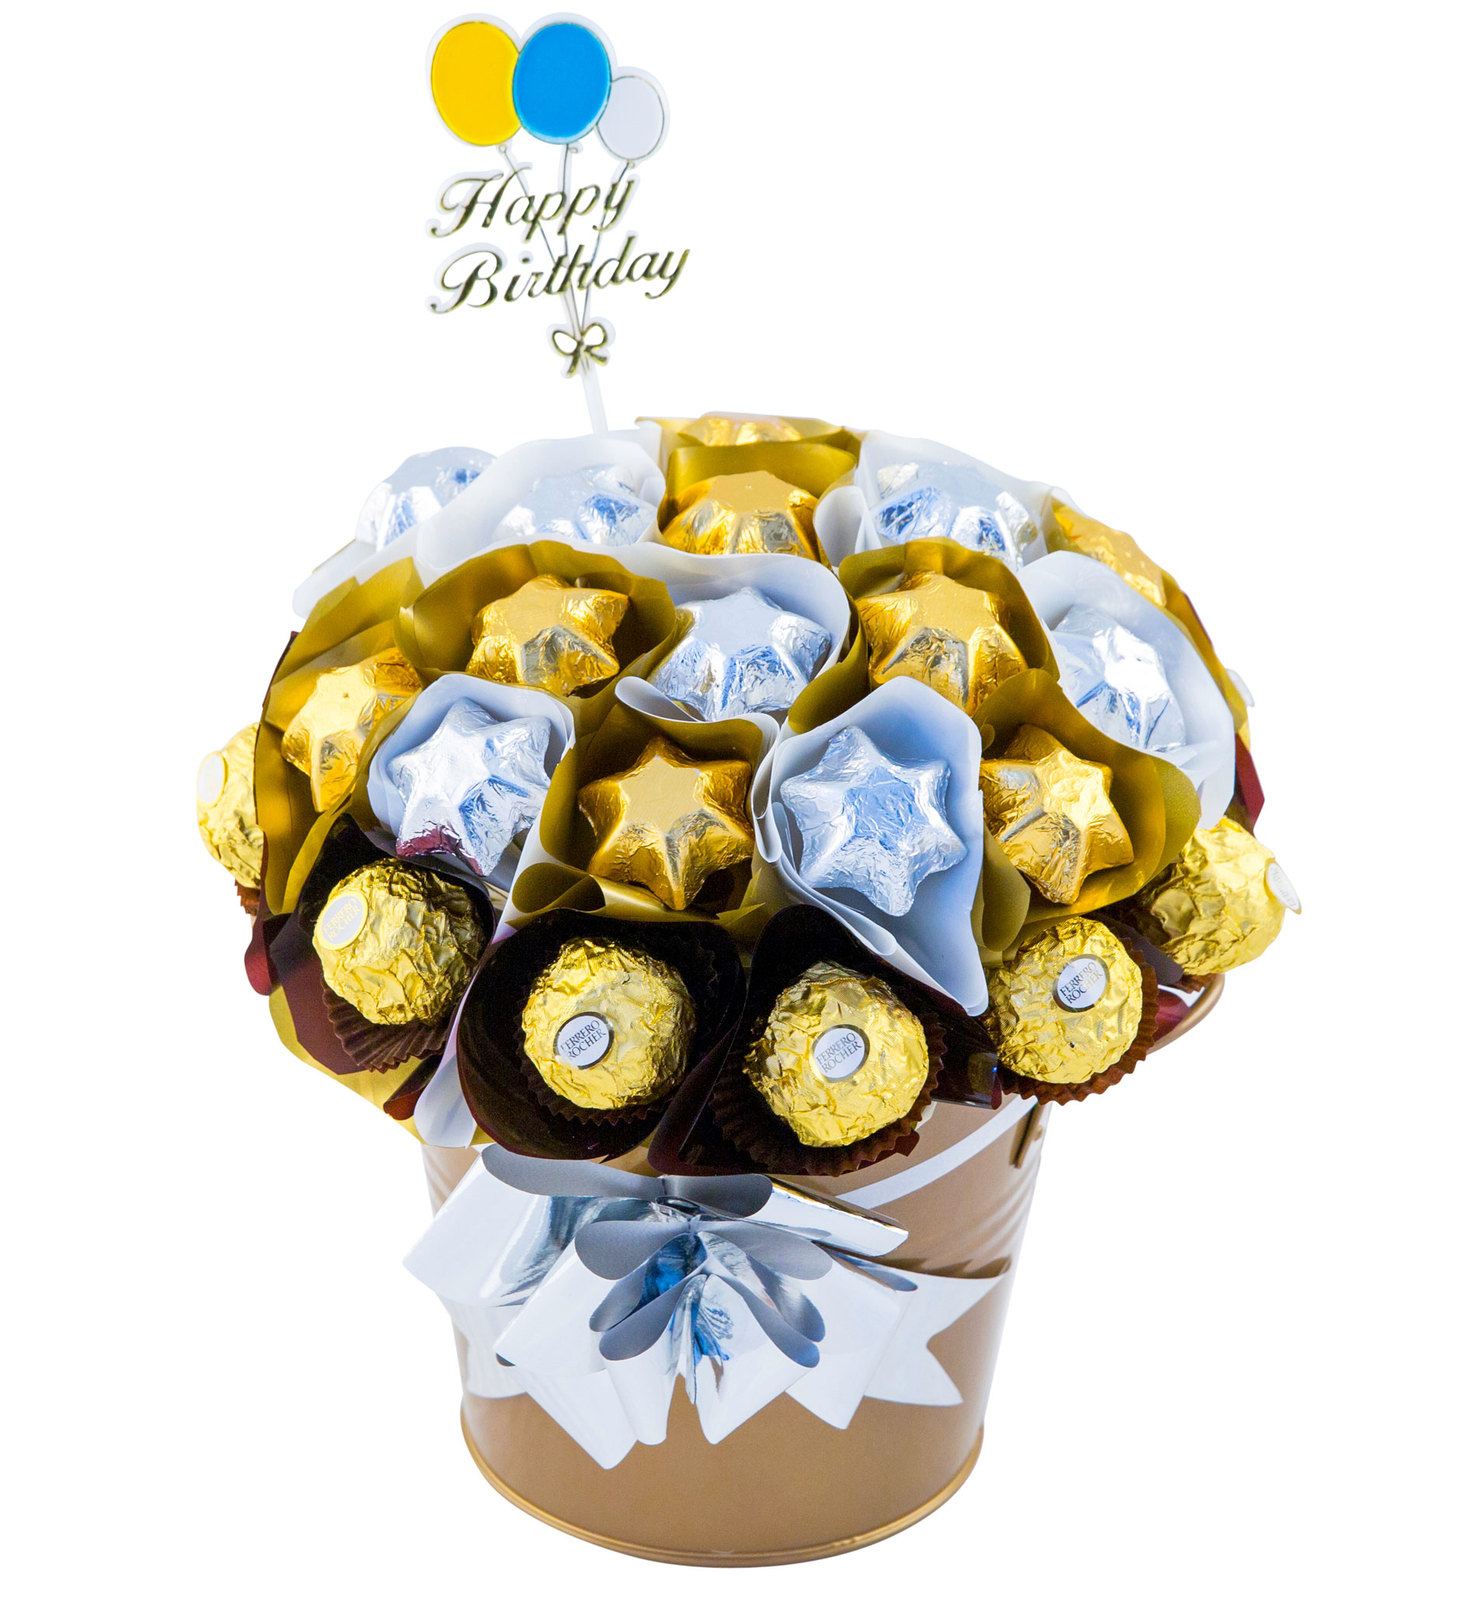 Chocolate Bouquets Chocolate Gift Baskets Hampers Delivered Australia Wide